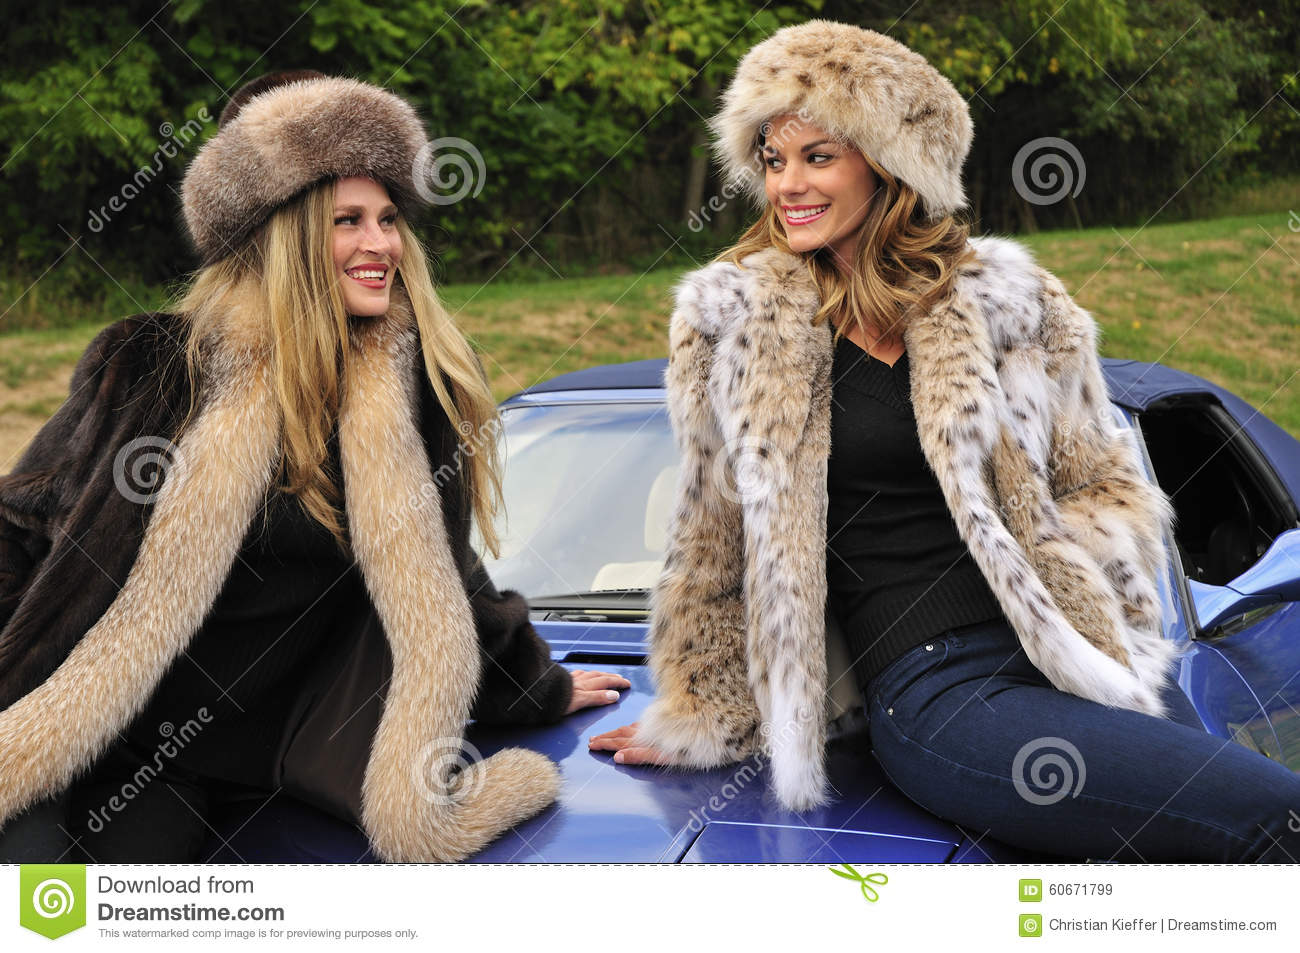 Pretty Women Wearing Winter Fur Coats Stock Photo - Image: 60671799